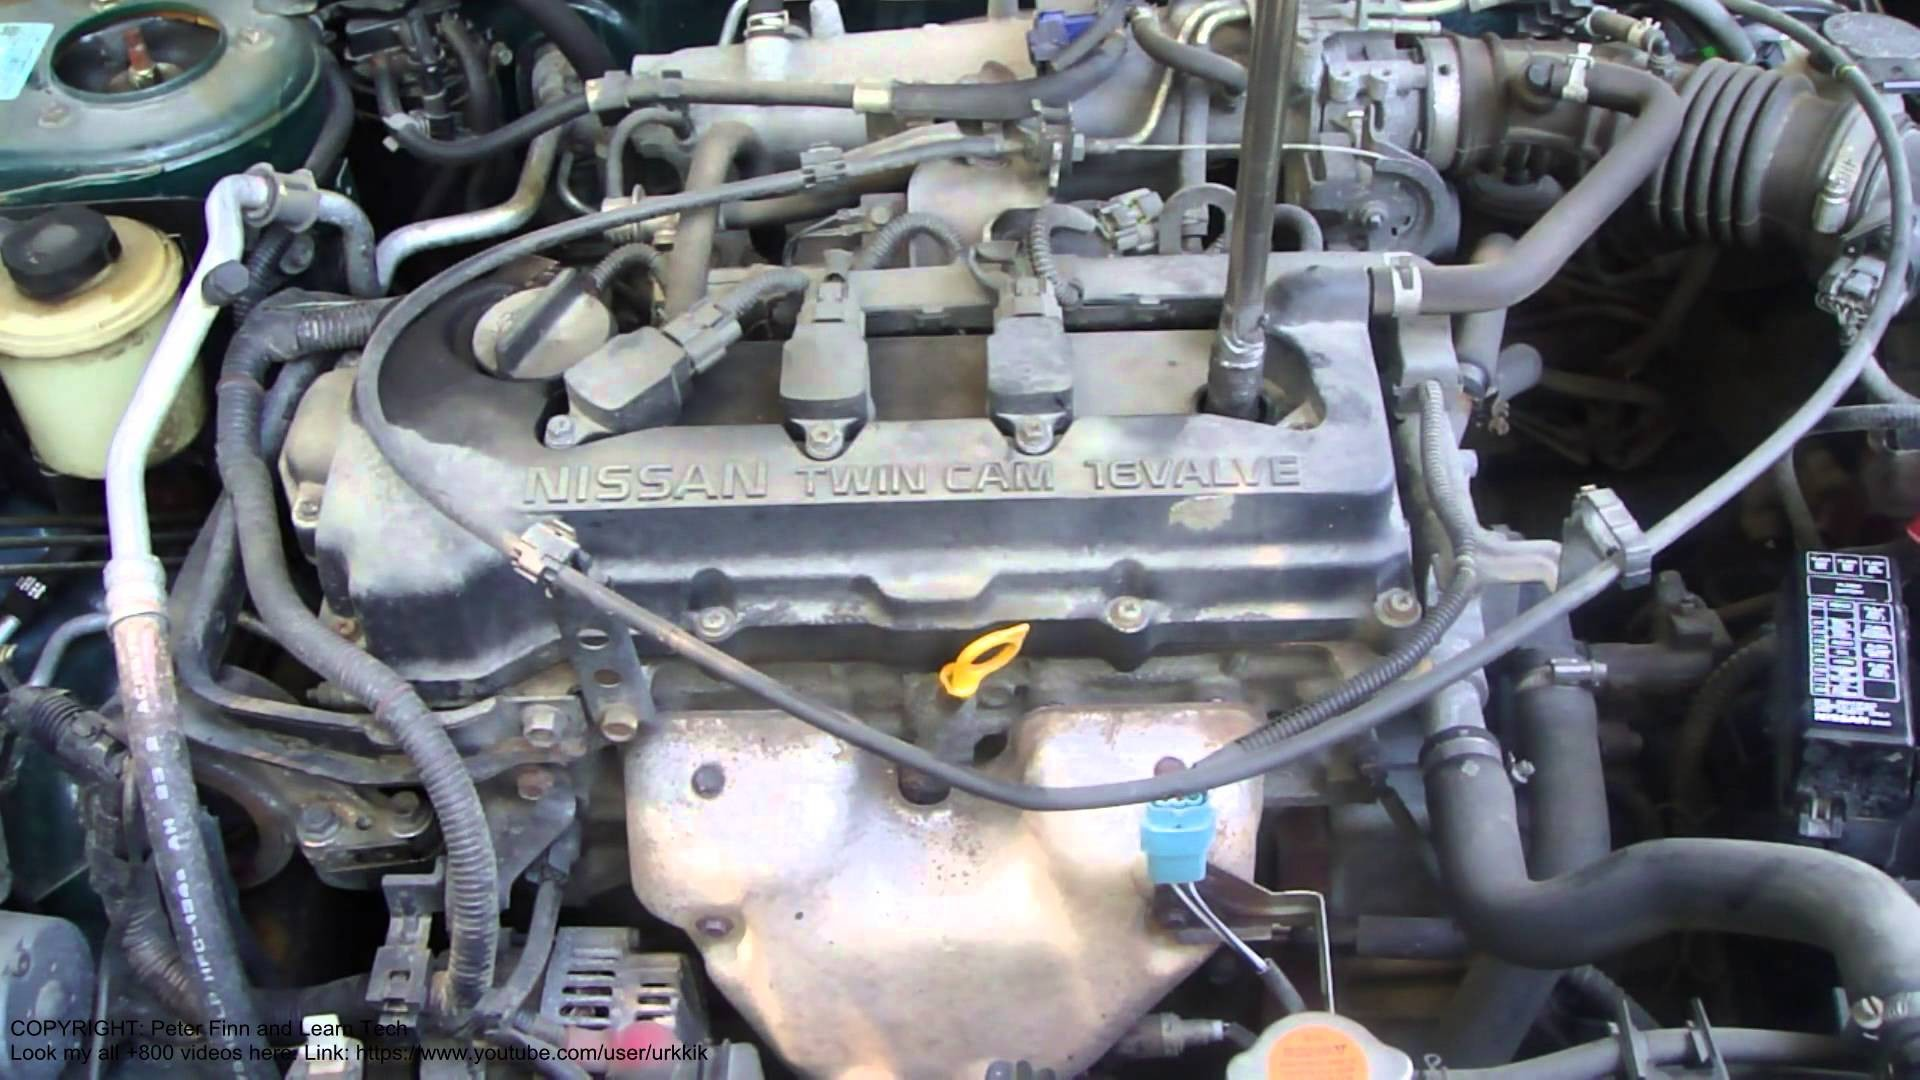 Nissan Almera Engine Diagram Radio Wiring Infiniti G20 How To Replace Primera Spark Plugs Also Of